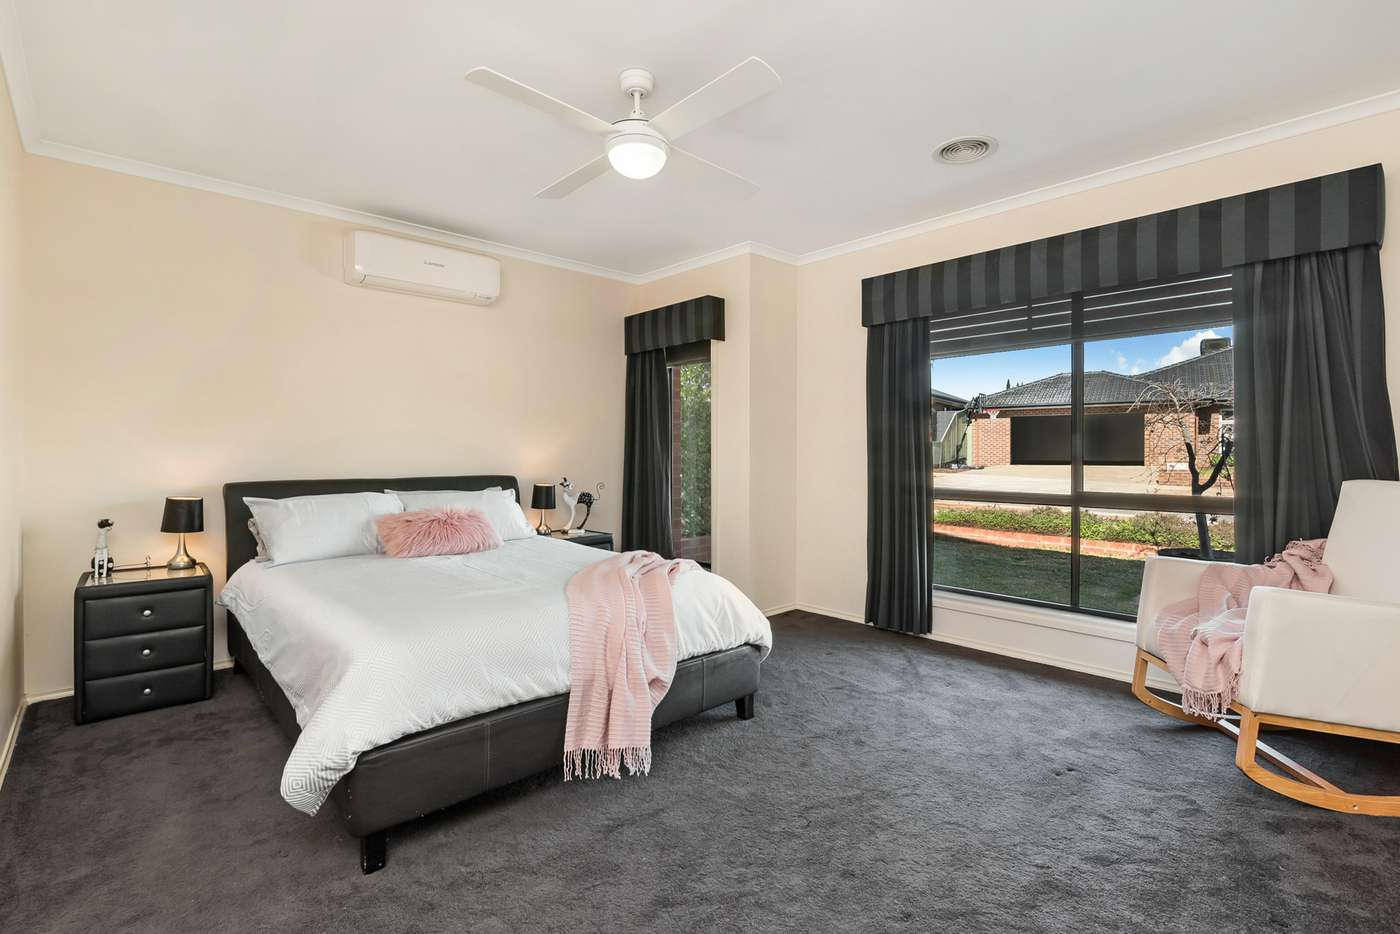 Sixth view of Homely house listing, 16 Rachel Terrace, Maiden Gully VIC 3551